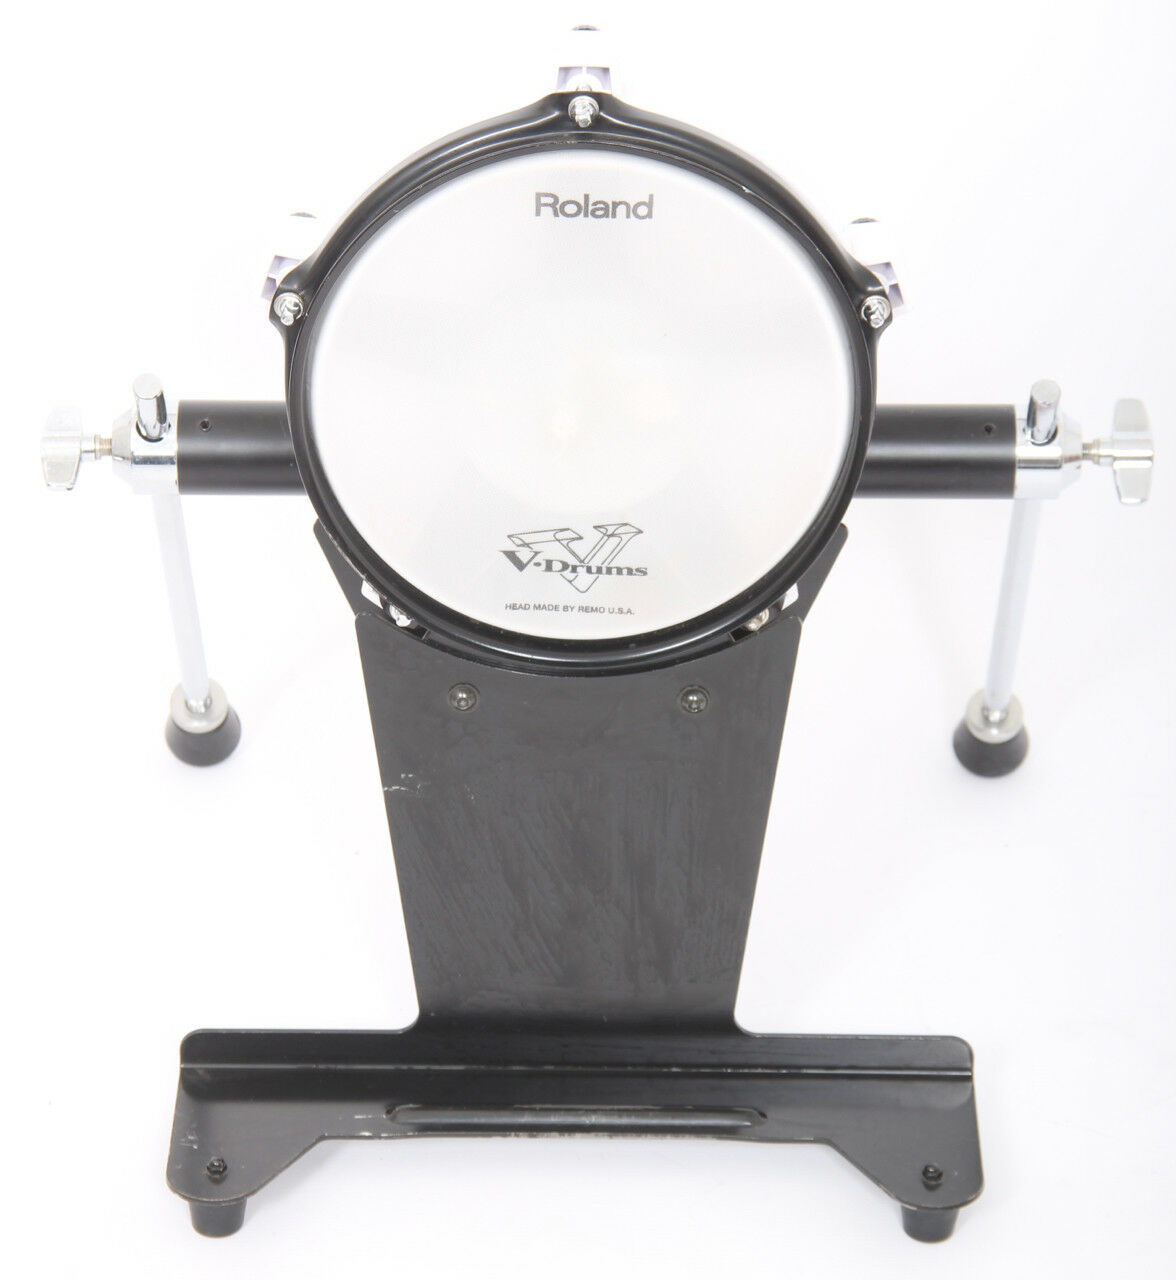 Details about Roland KD-80 Electronic Bass Drum Trigger Pad For Electric TD  Series drum Kits